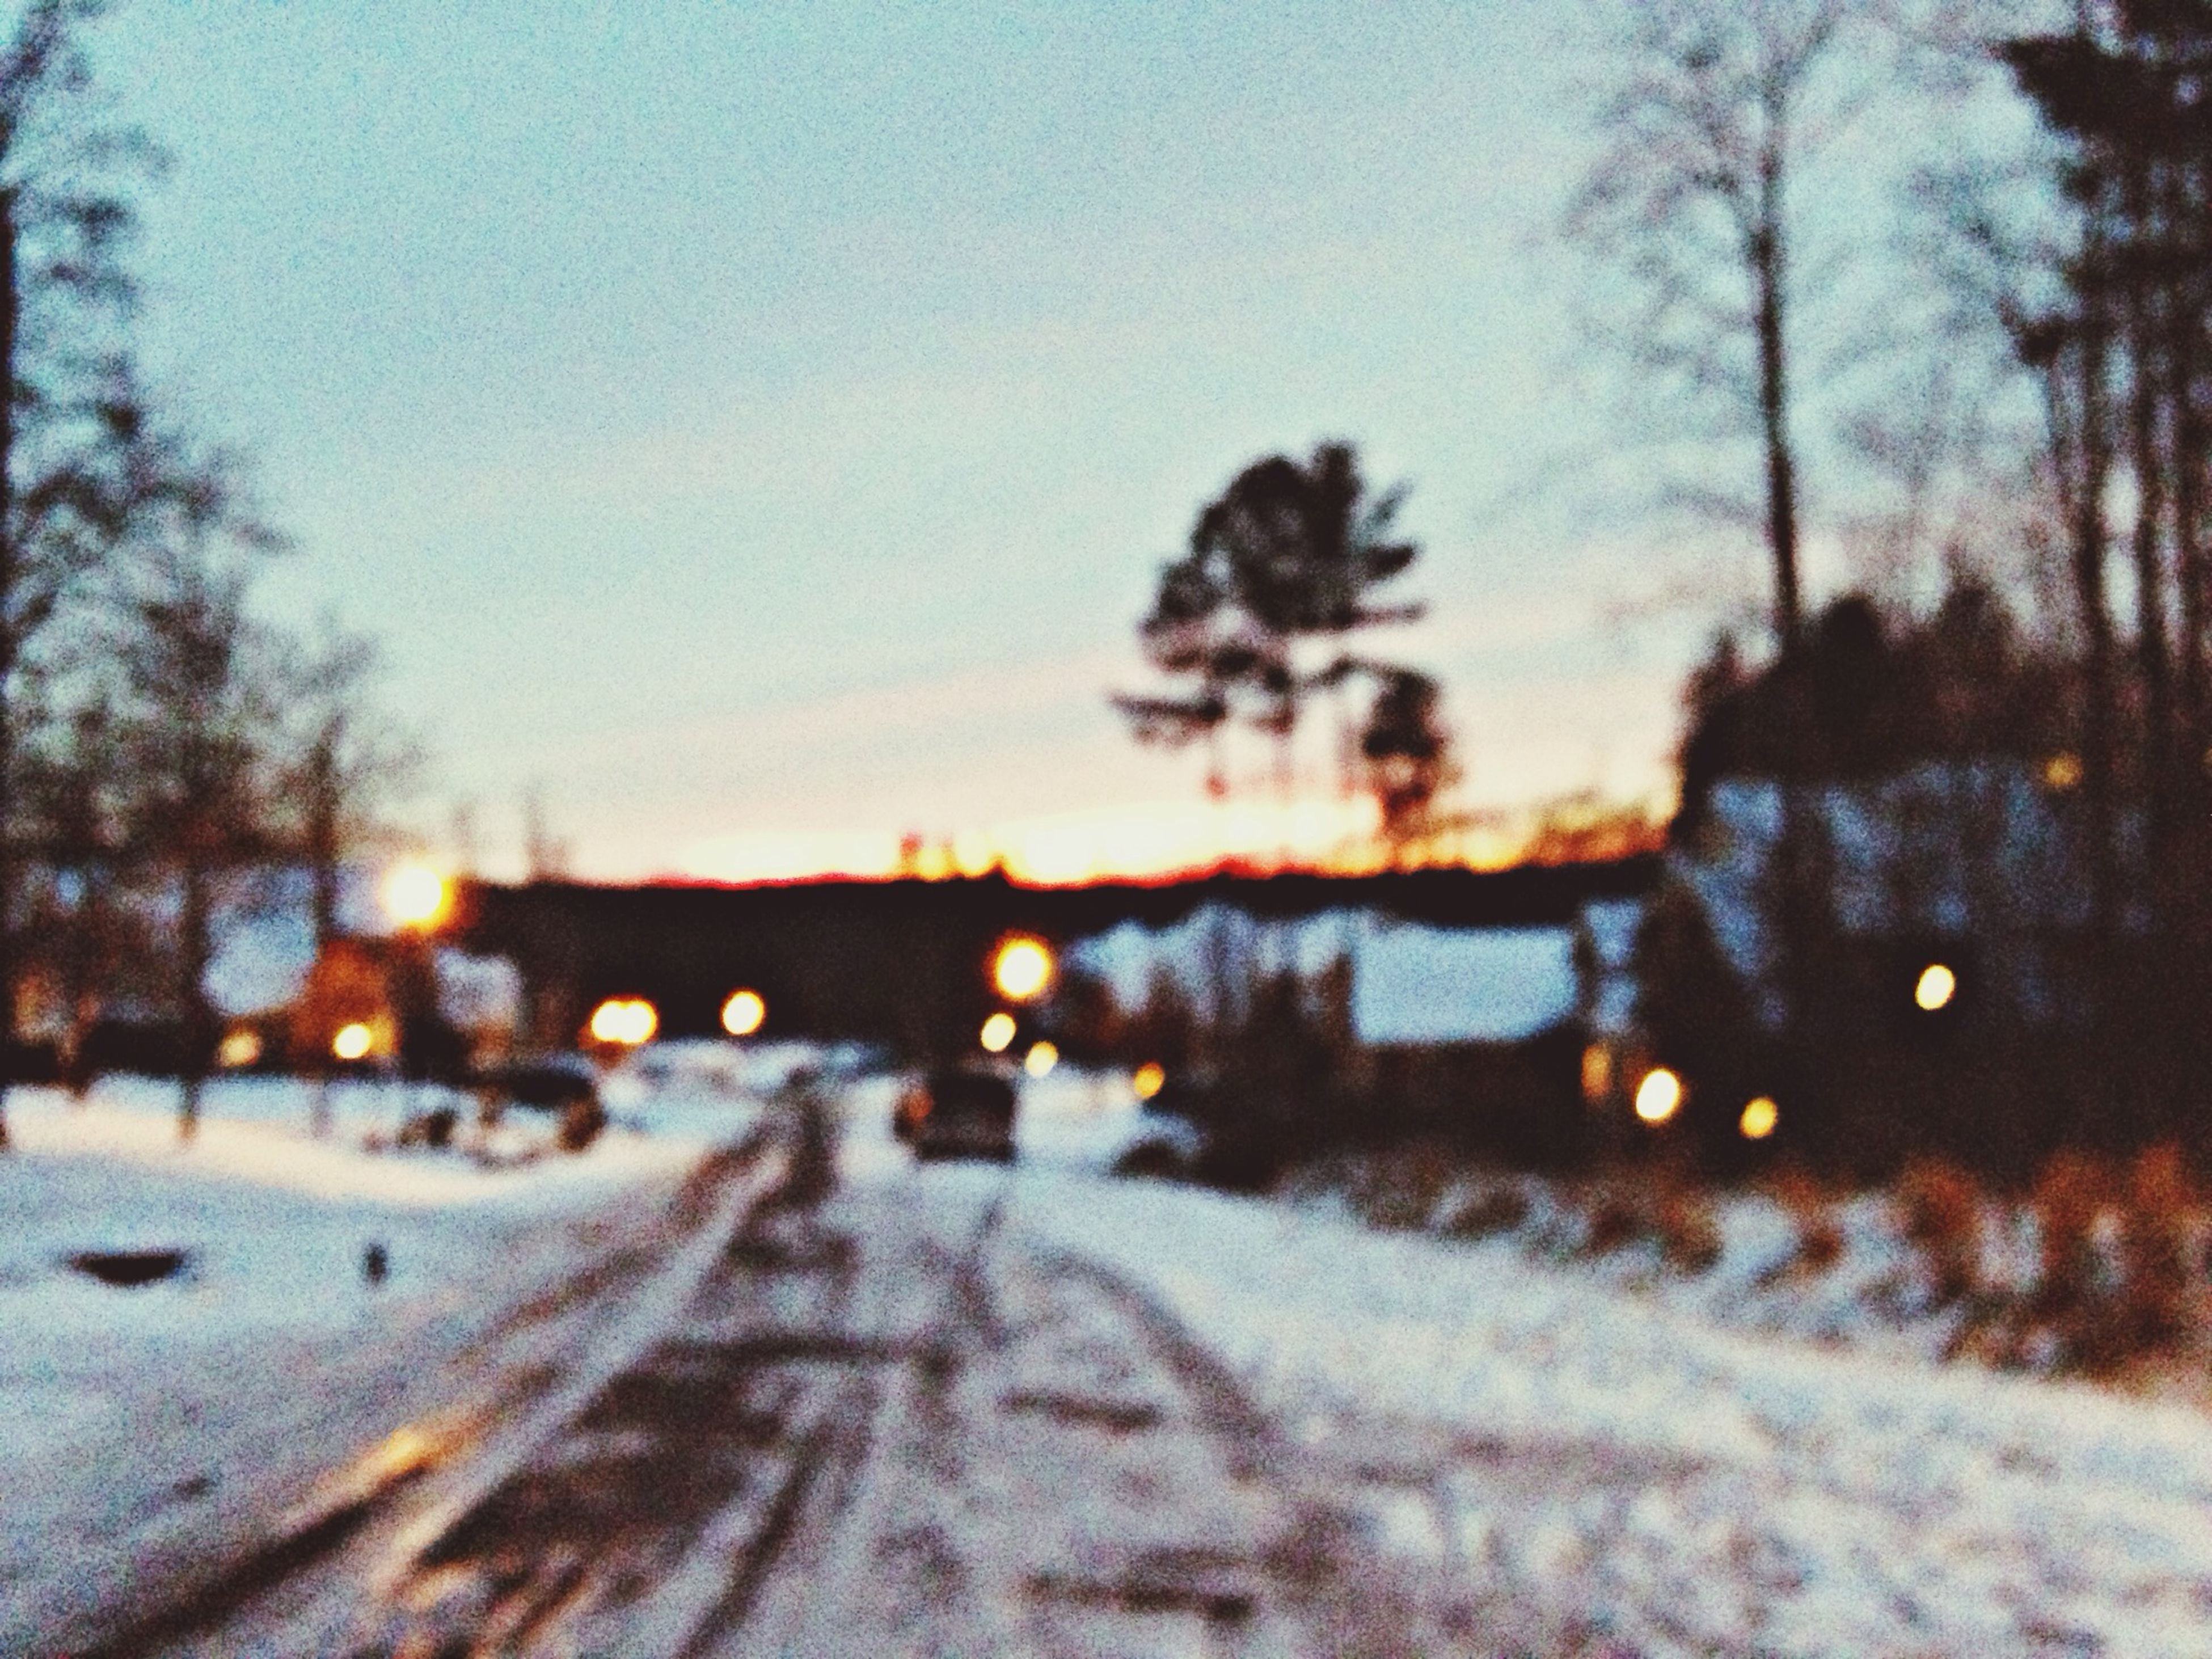 snow, winter, cold temperature, season, weather, transportation, road, covering, sunset, tree, street, frozen, the way forward, sky, car, dusk, nature, bare tree, landscape, clear sky